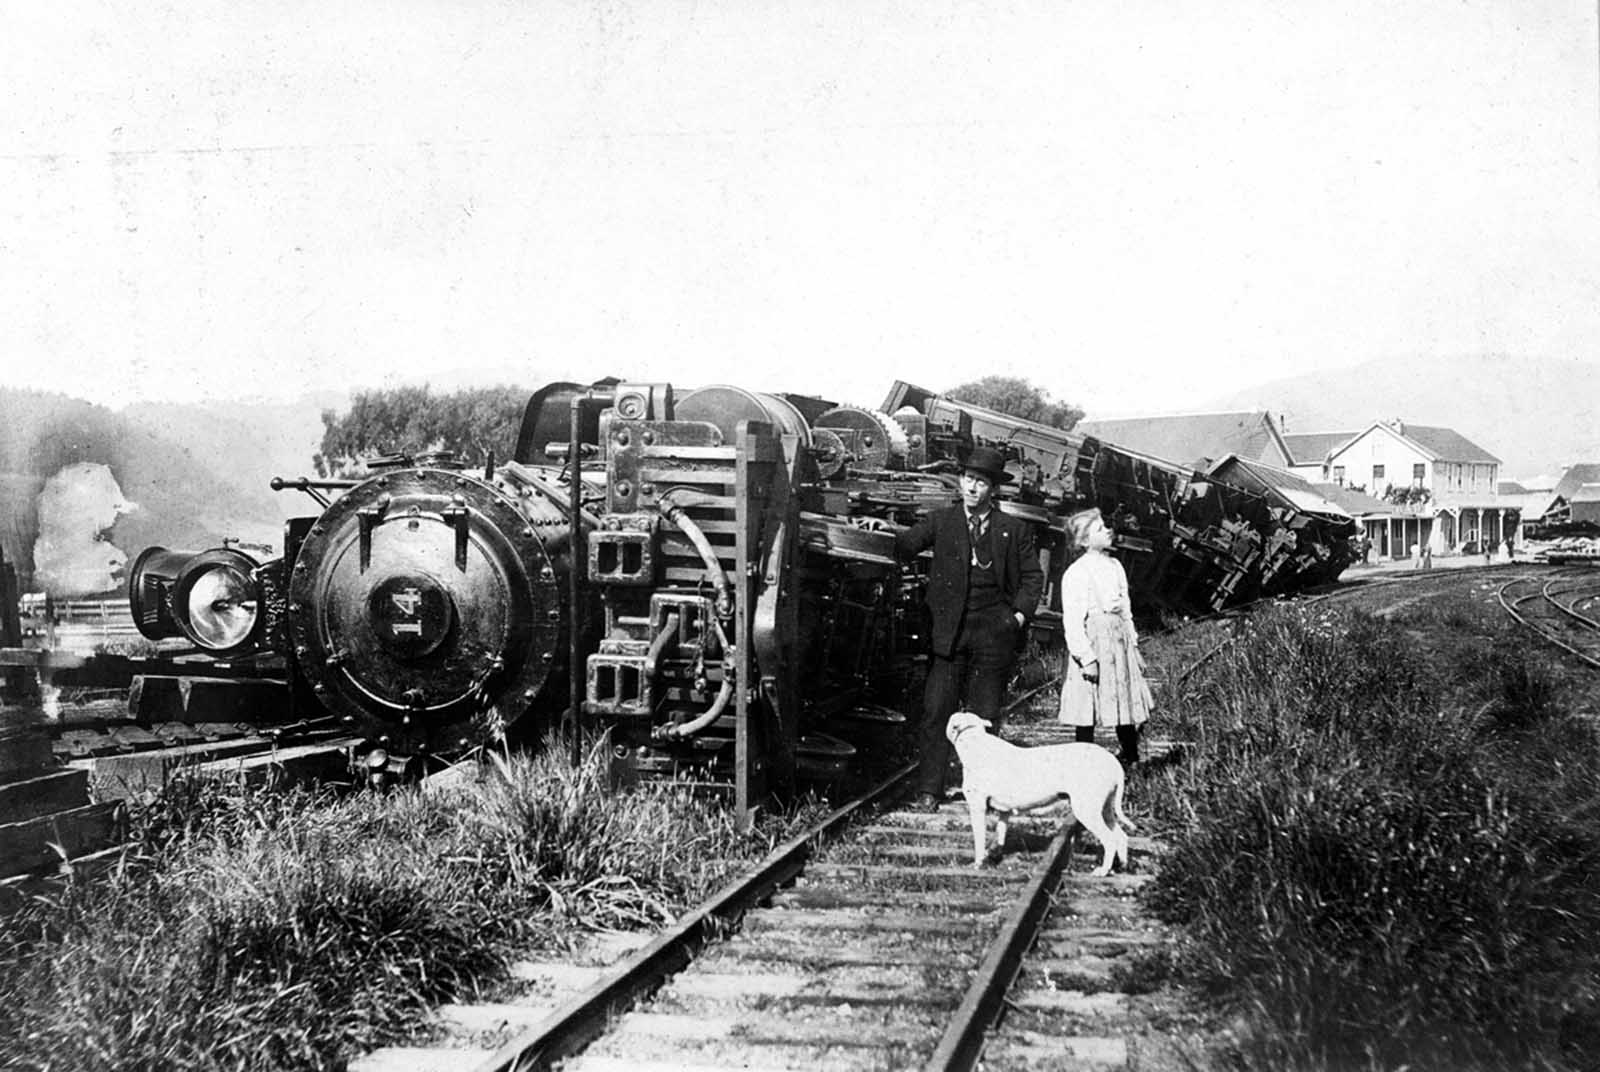 A train thrown down by the earthquake at Point Reyes Station. The train was standing on a siding. Beyond are the buildings of the Point Reyes Hotel and, on the extreme right, the ruin of a stone store which was shaken down.